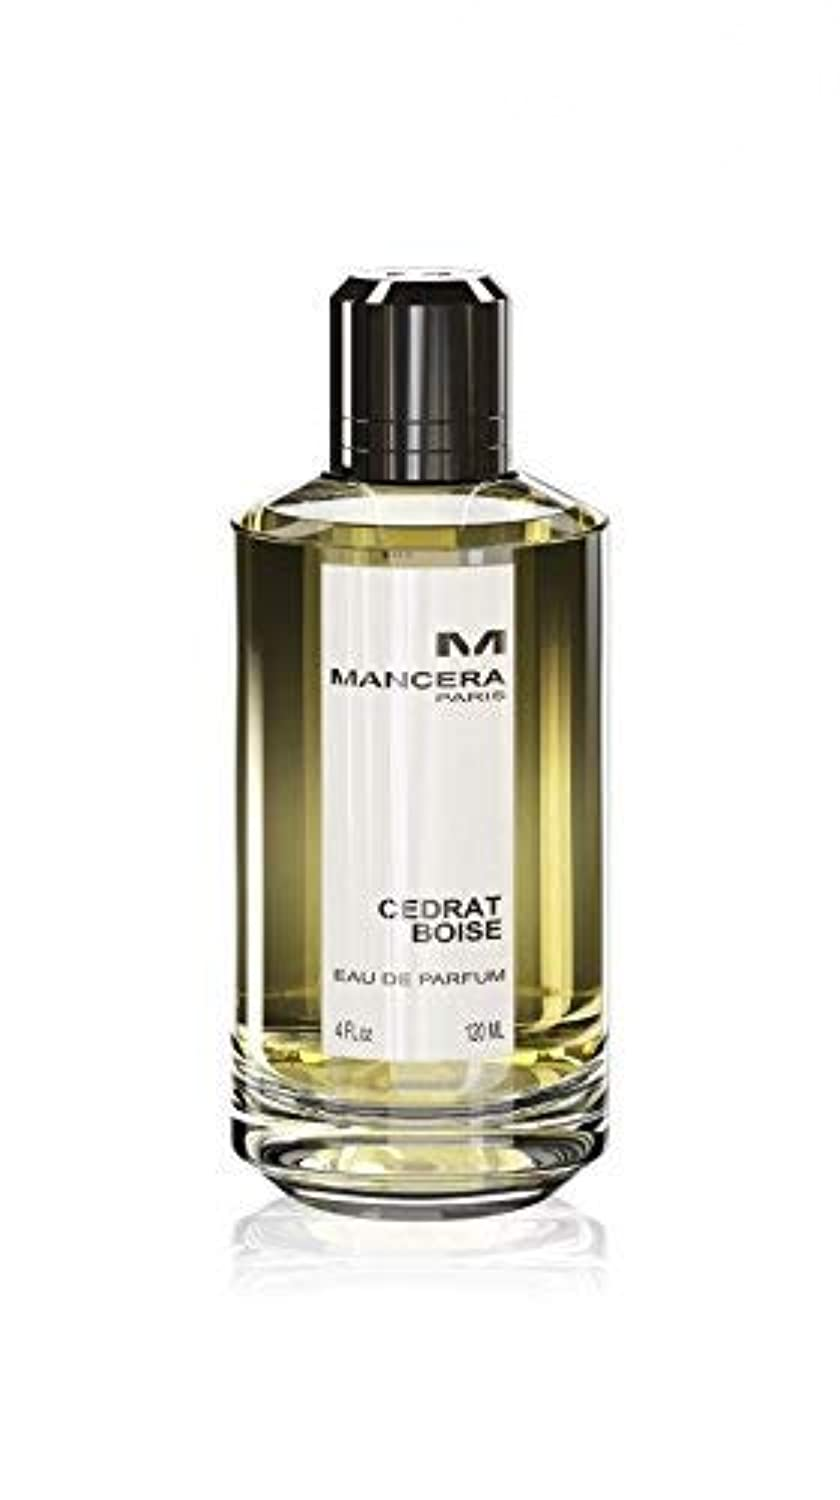 100% Authentic MANCERA Cedrat Boise Eau de Perfume 120ml Made in France + 2 Mancera Samples + 30ml Skincare /...